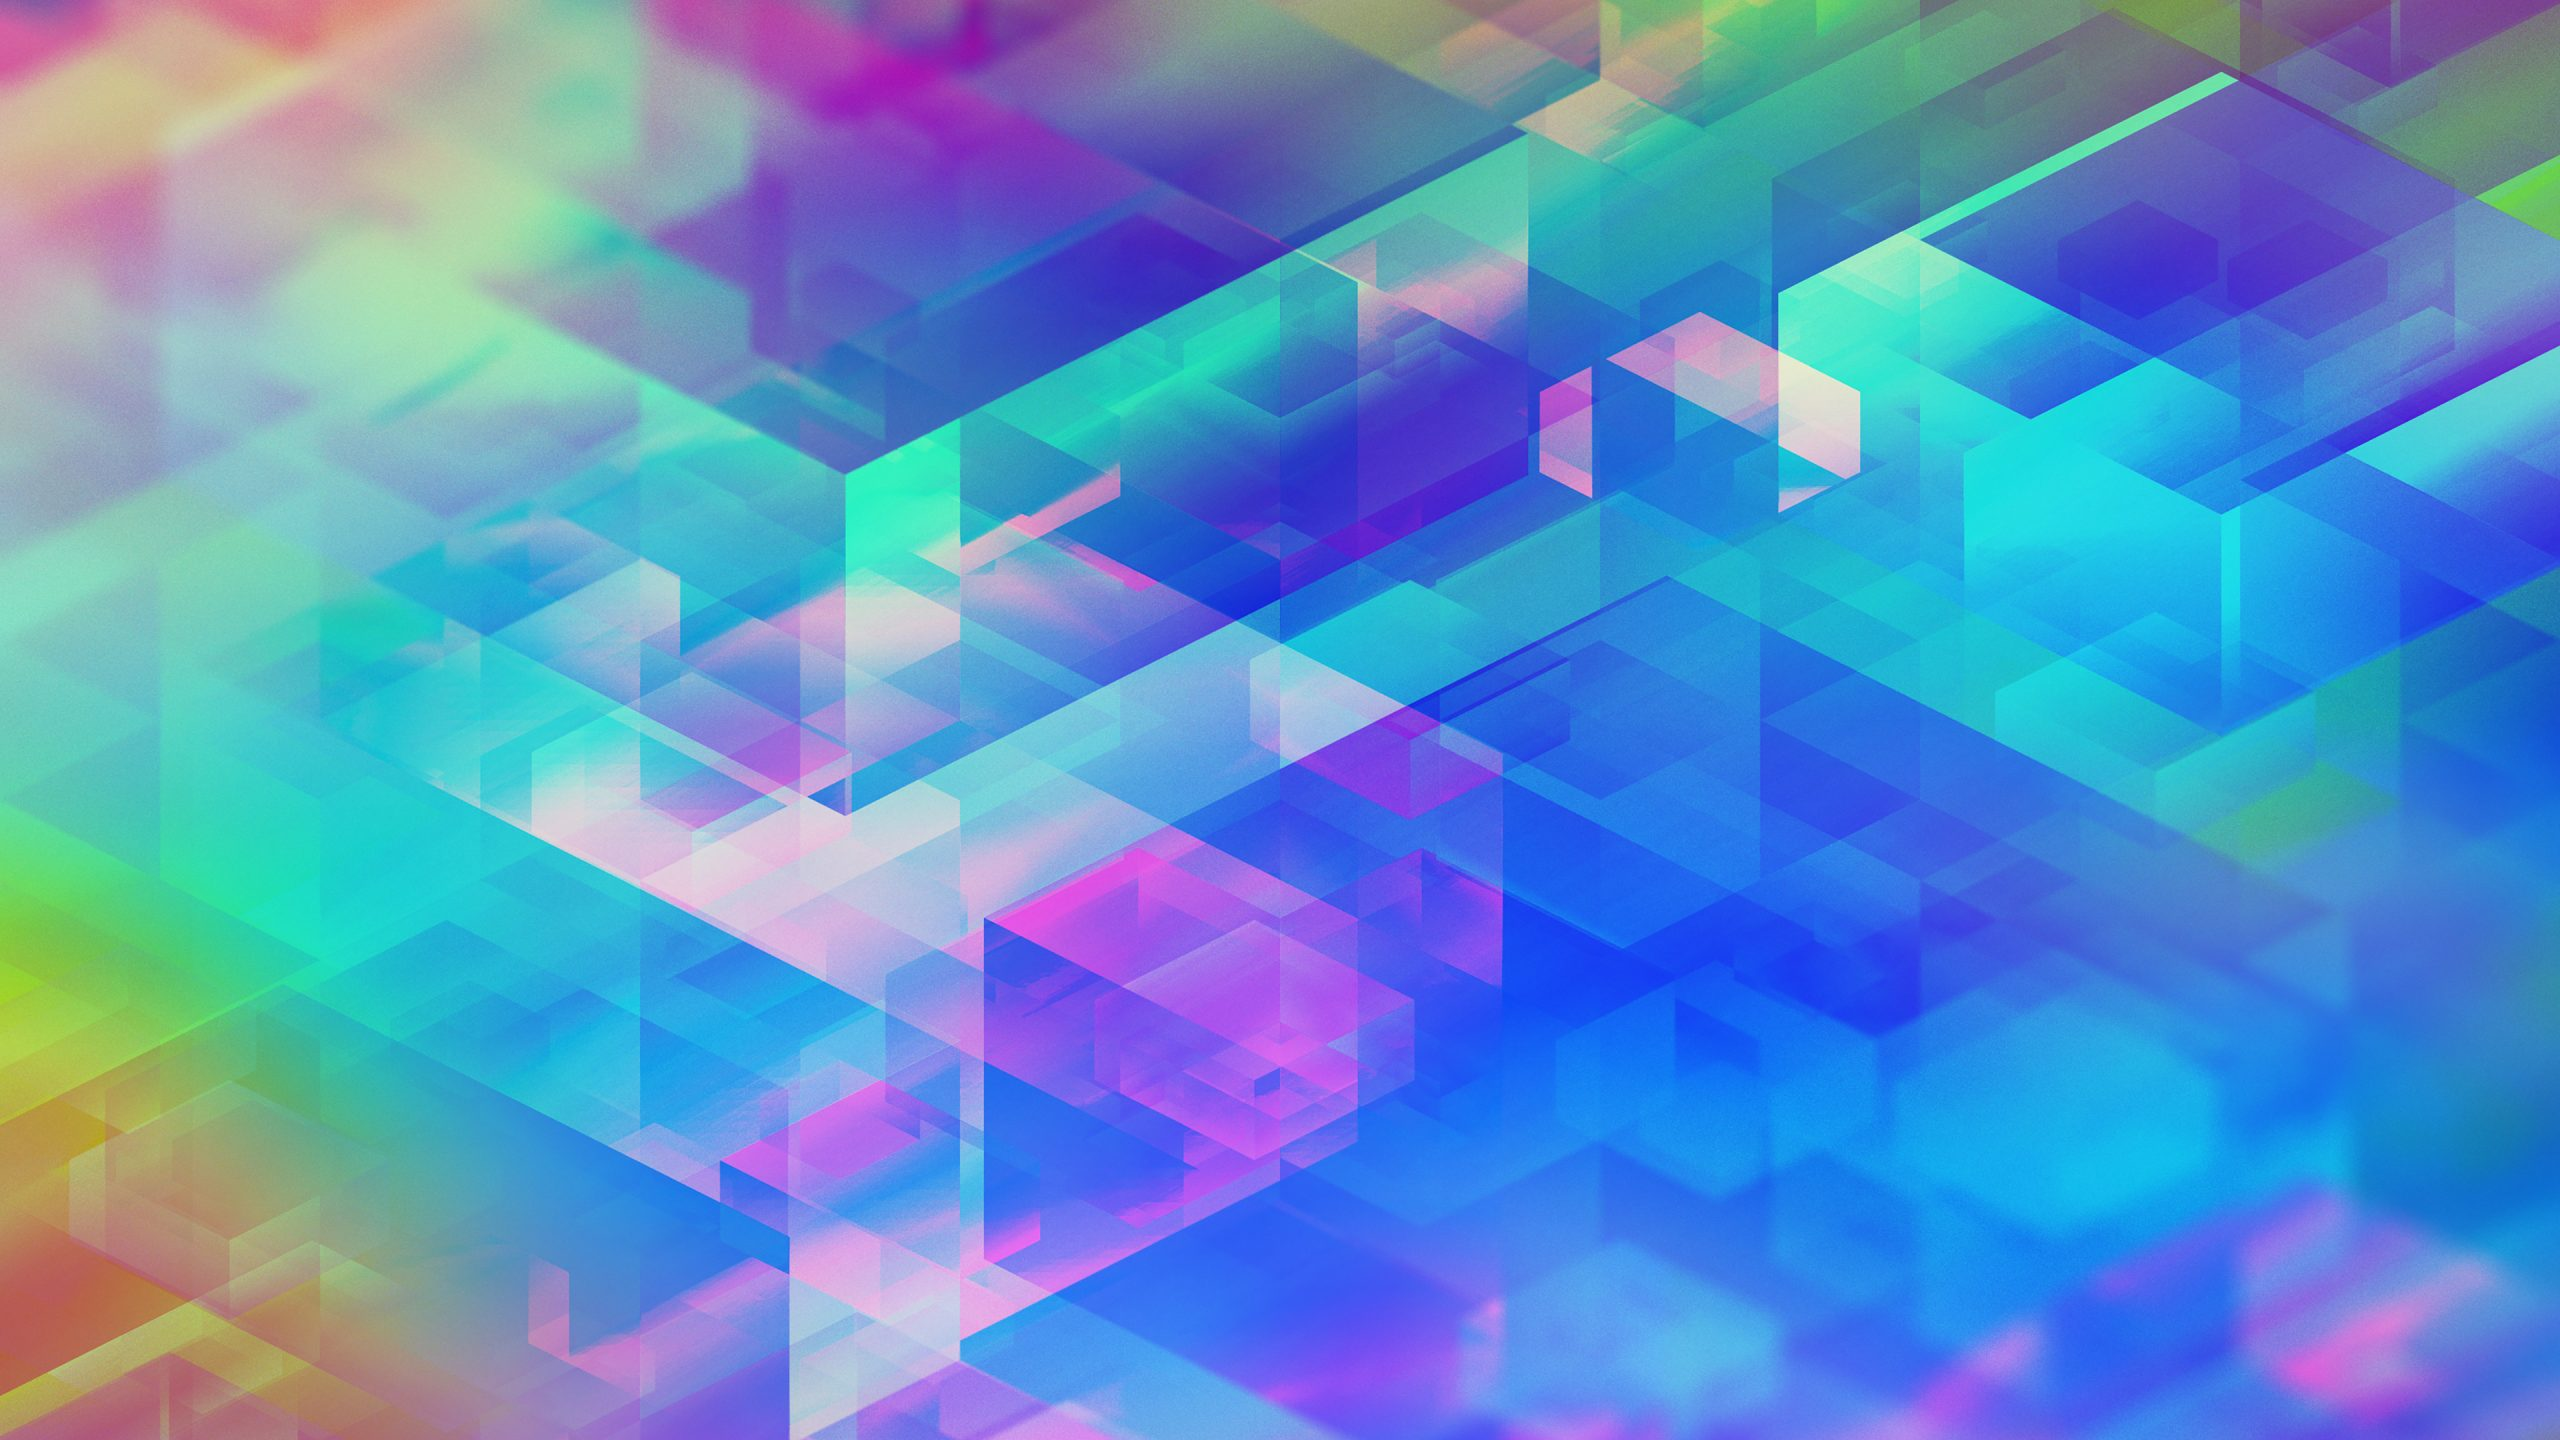 colorful-abstract-4k-wallpaper